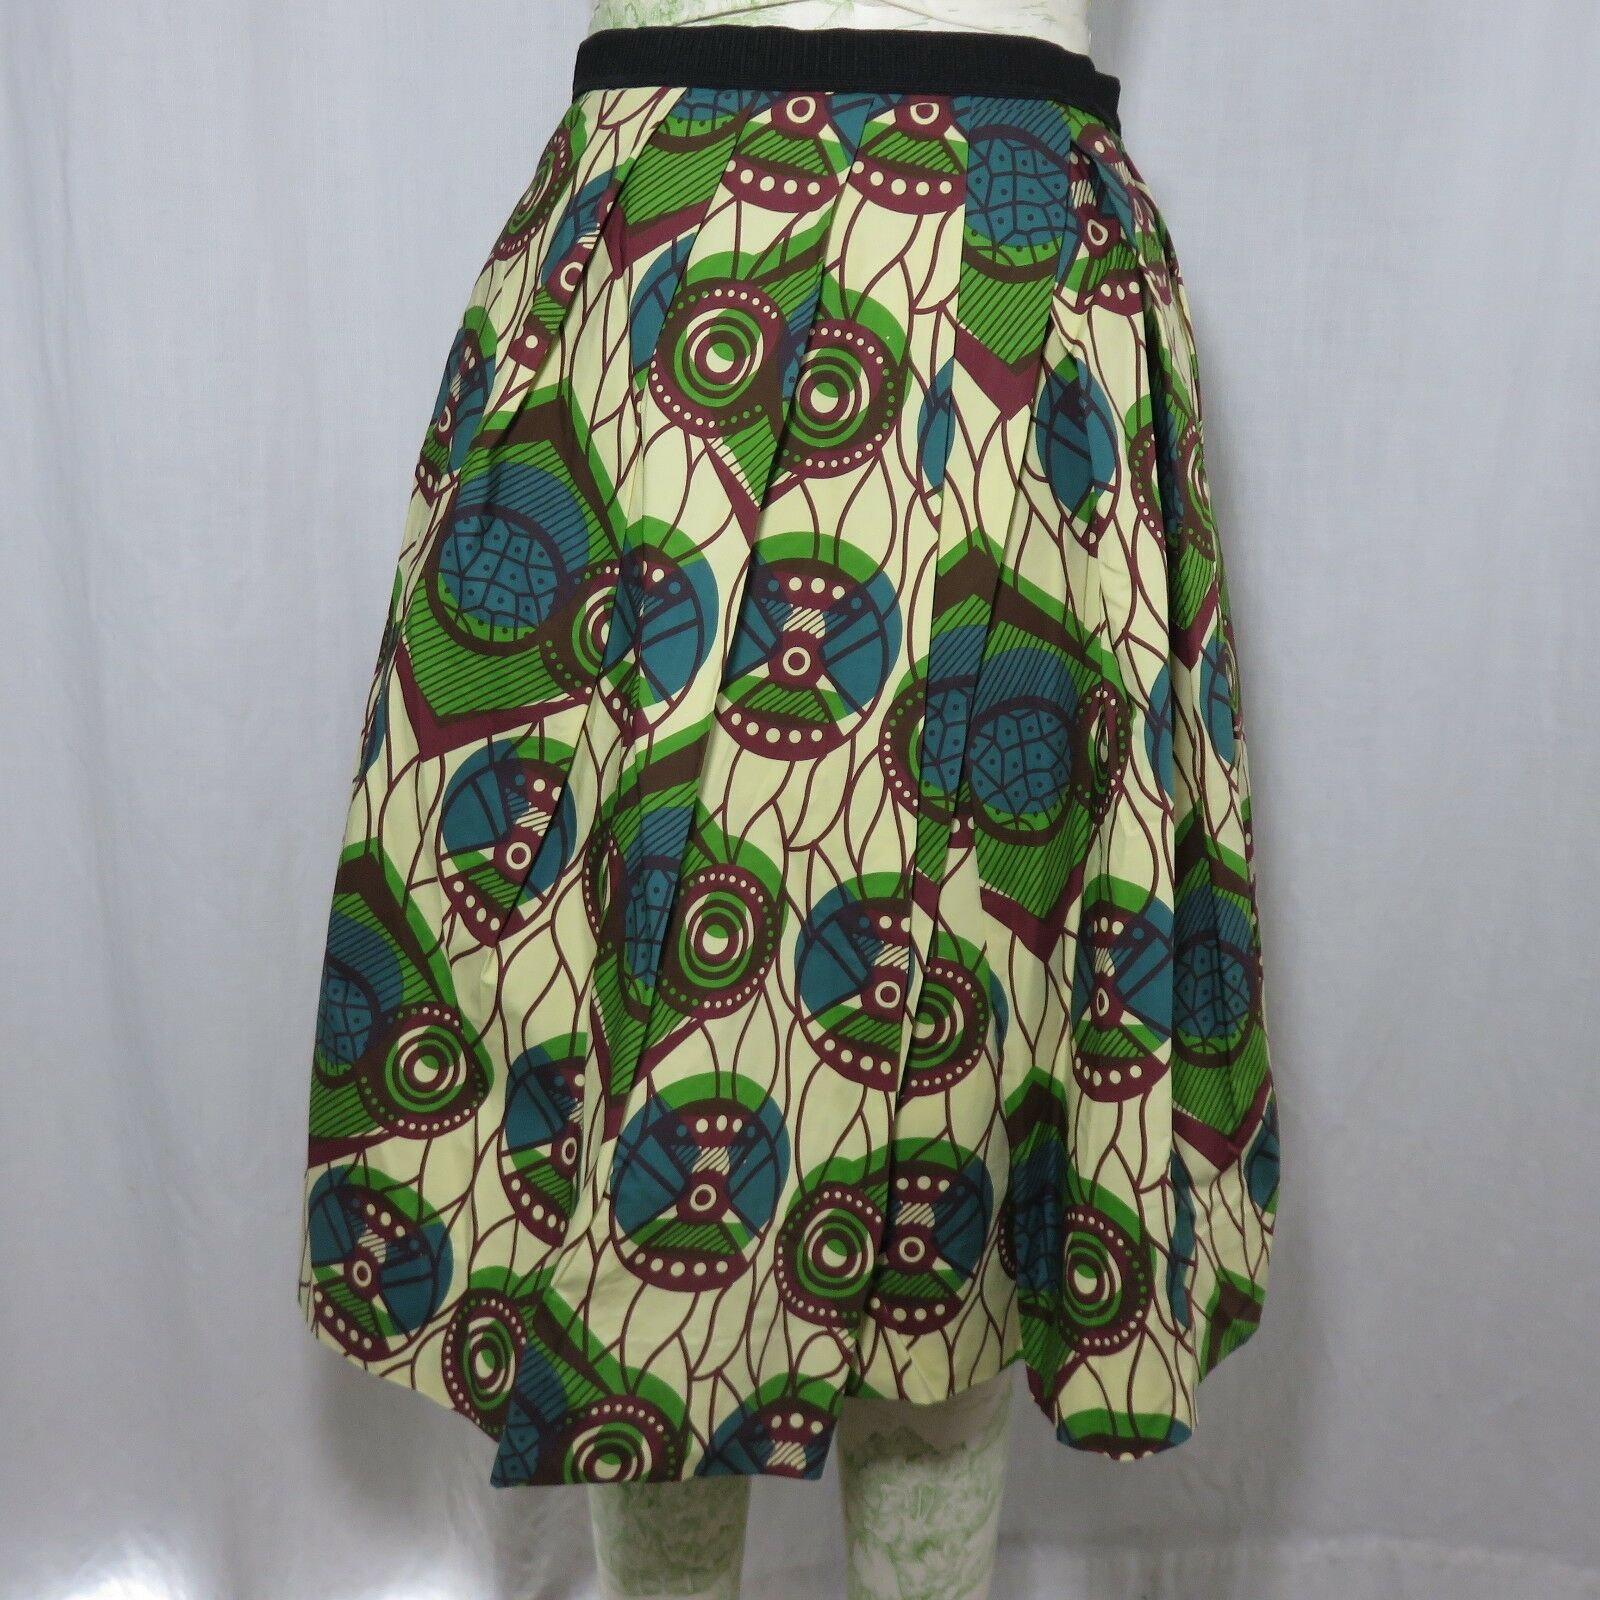 New Marni Mixed Tribal Print Pleated Skirt 6 Turquoise bluee Green Brown